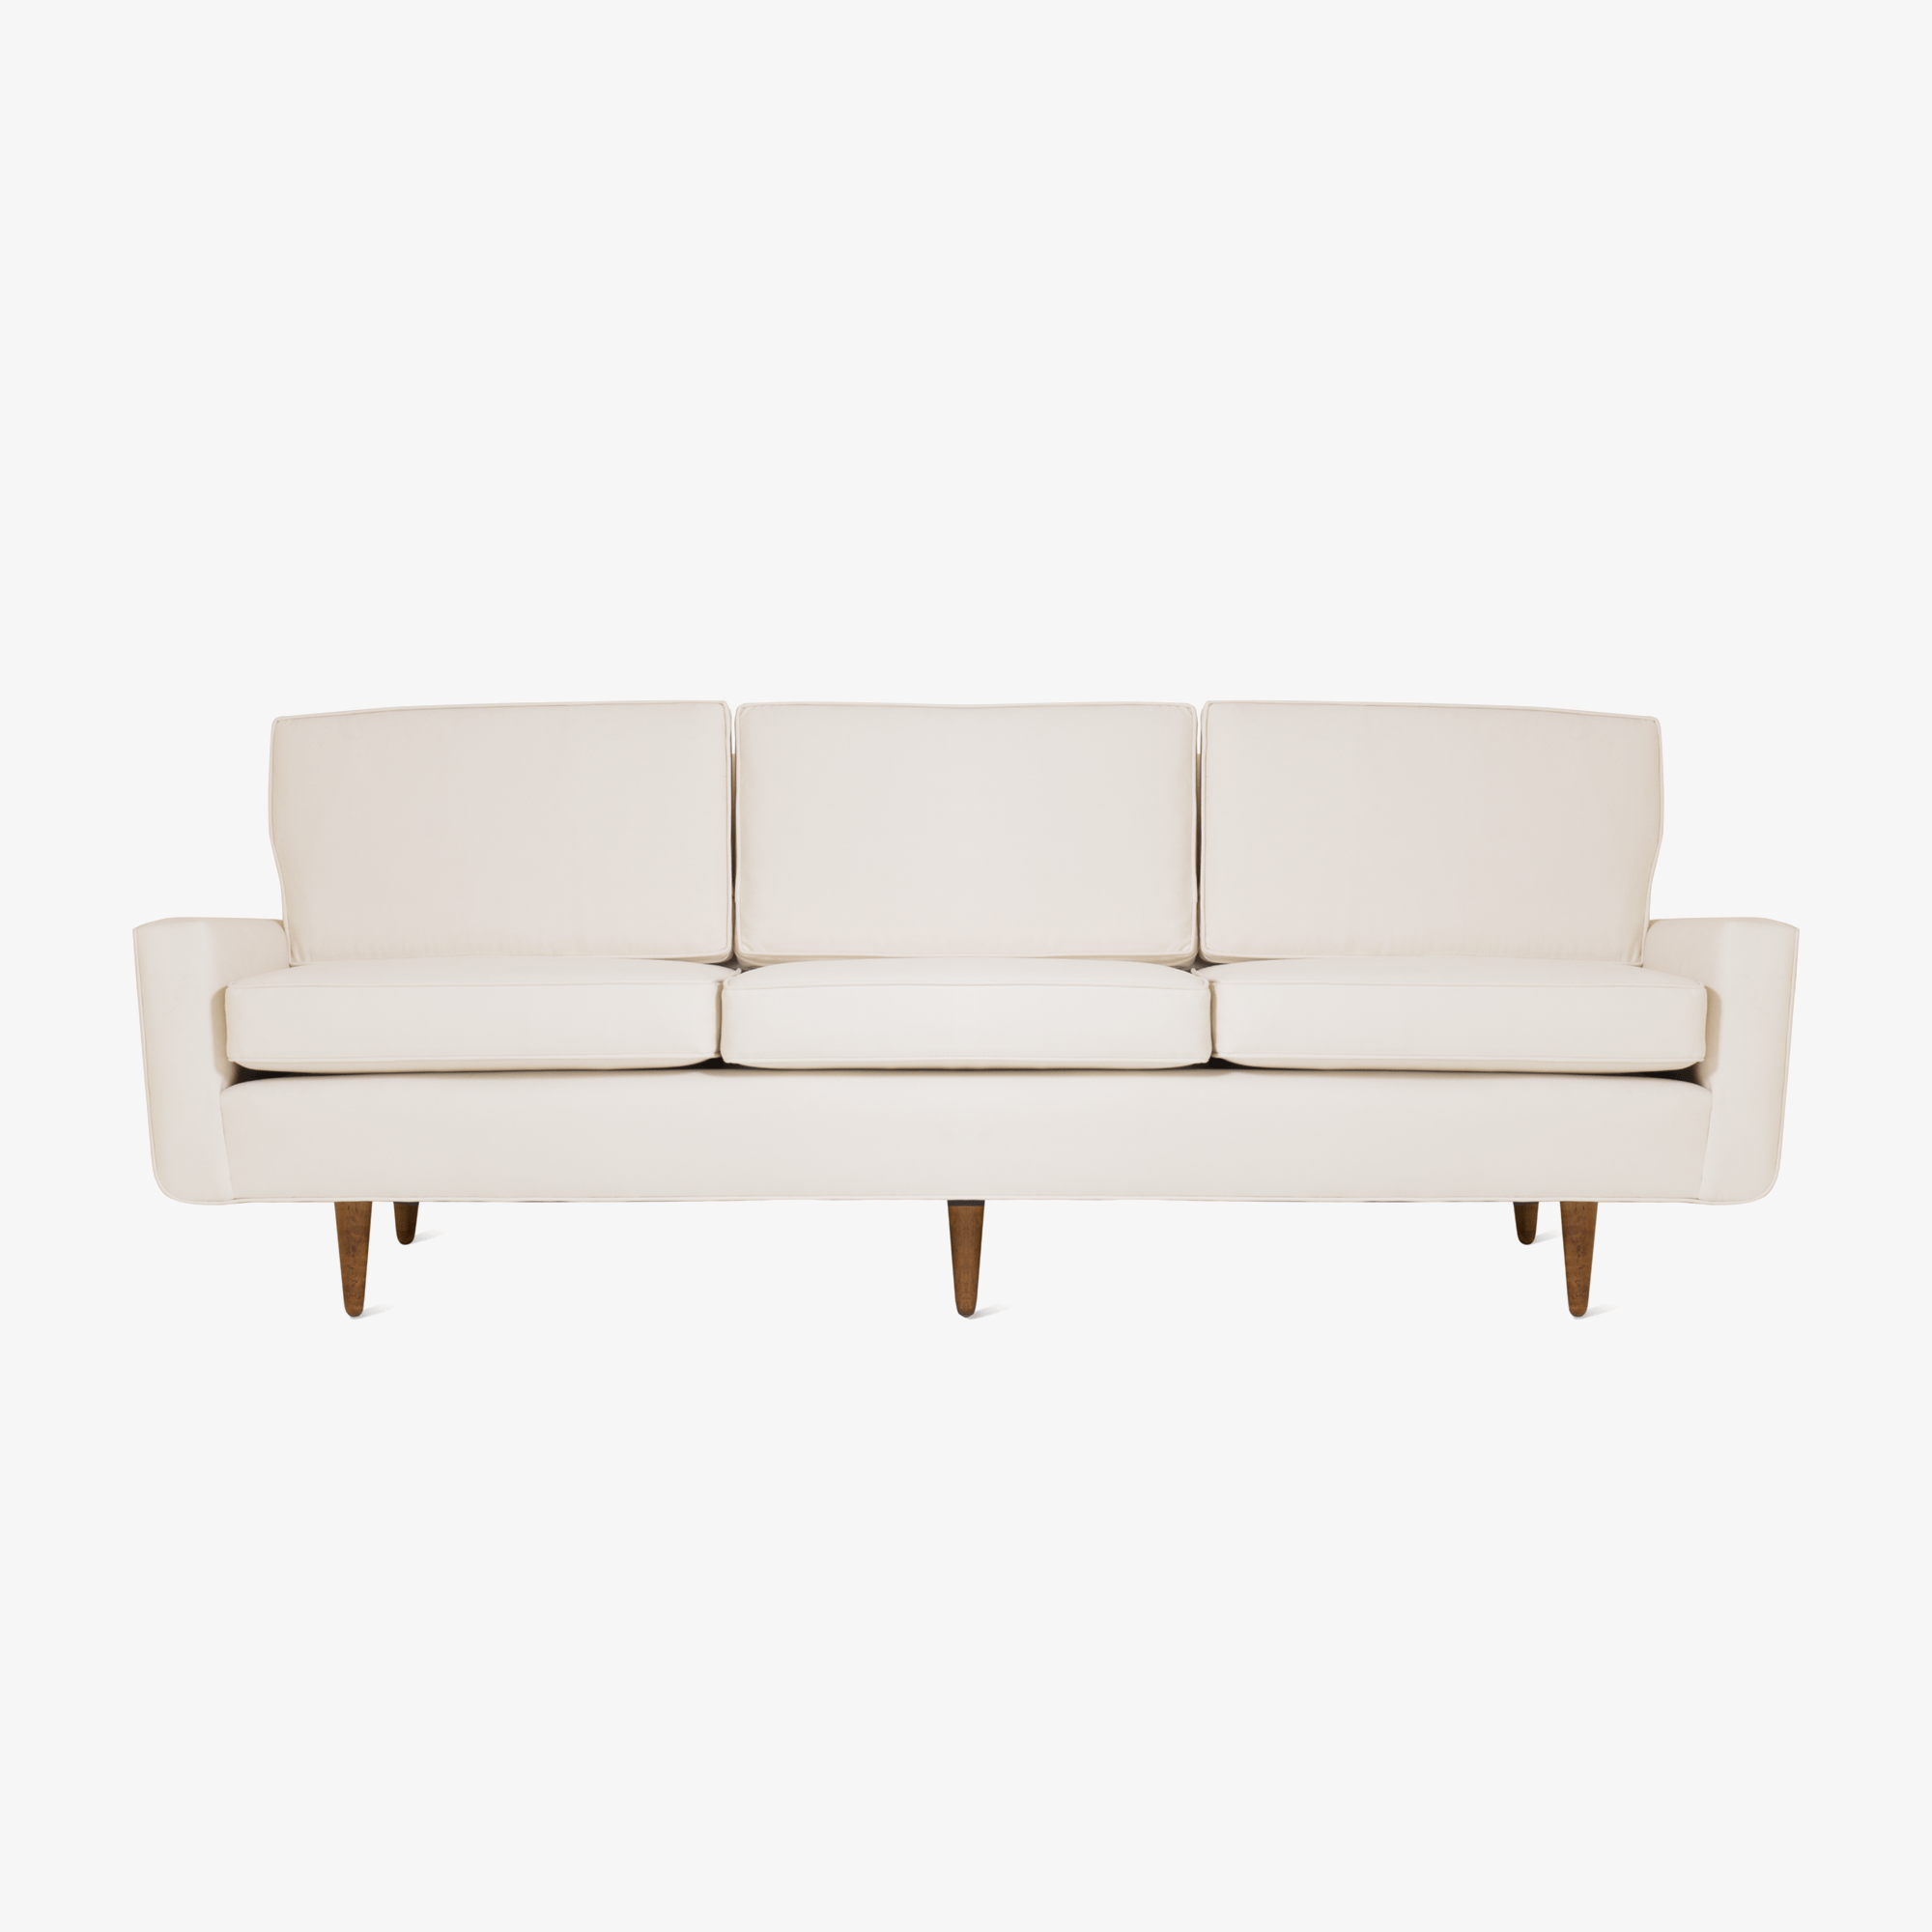 Knoll Sofa Early Florence Knoll Sofa